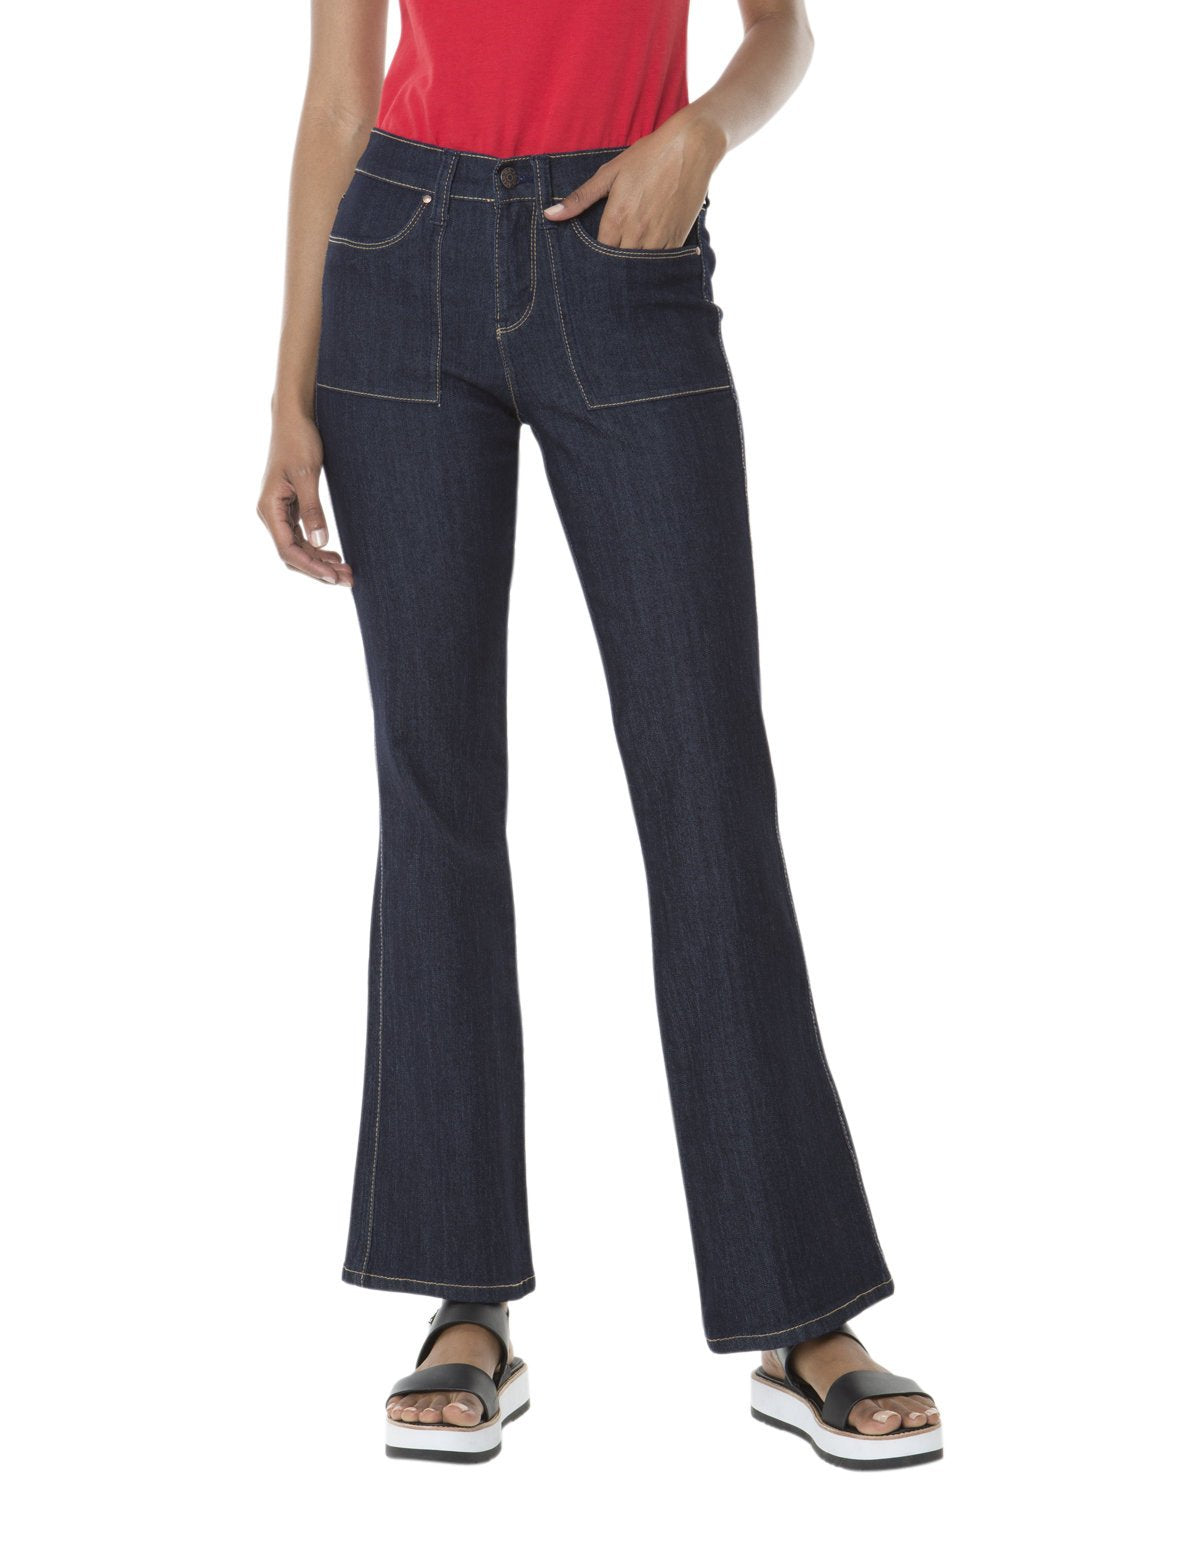 Chetwood Flare Jean - U.S. Polo Assn.